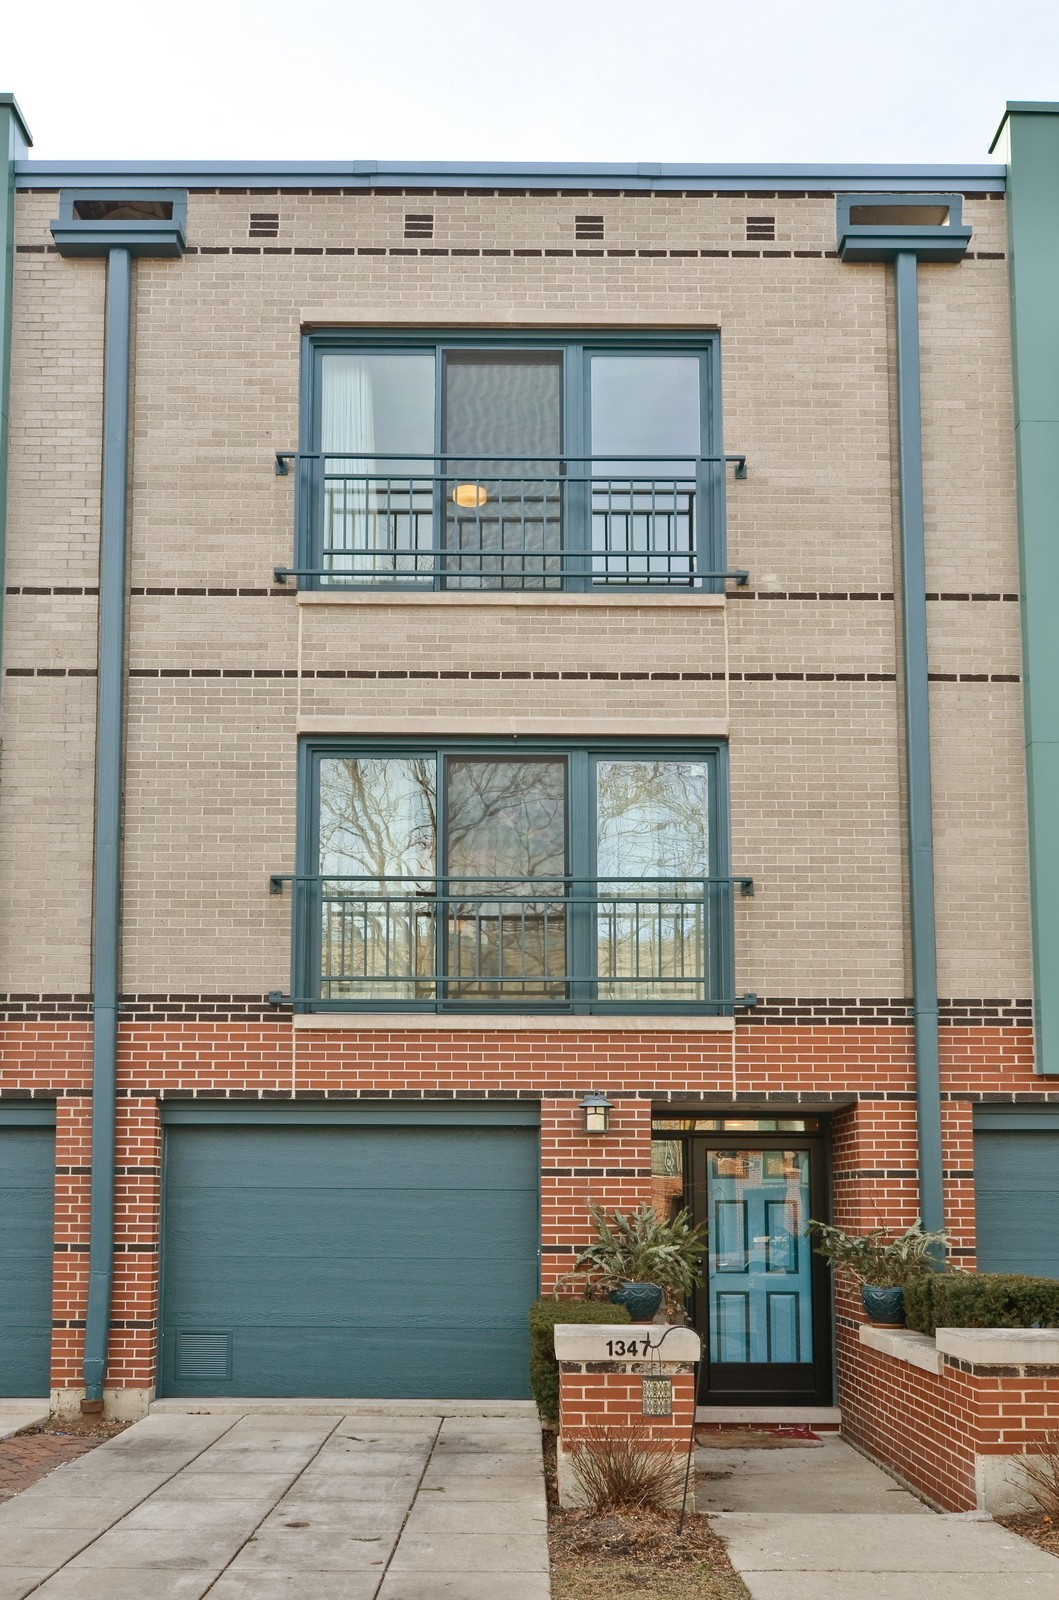 Real Estate Photography - 1347 S Clark, Chicago, IL, 60605 - Front View